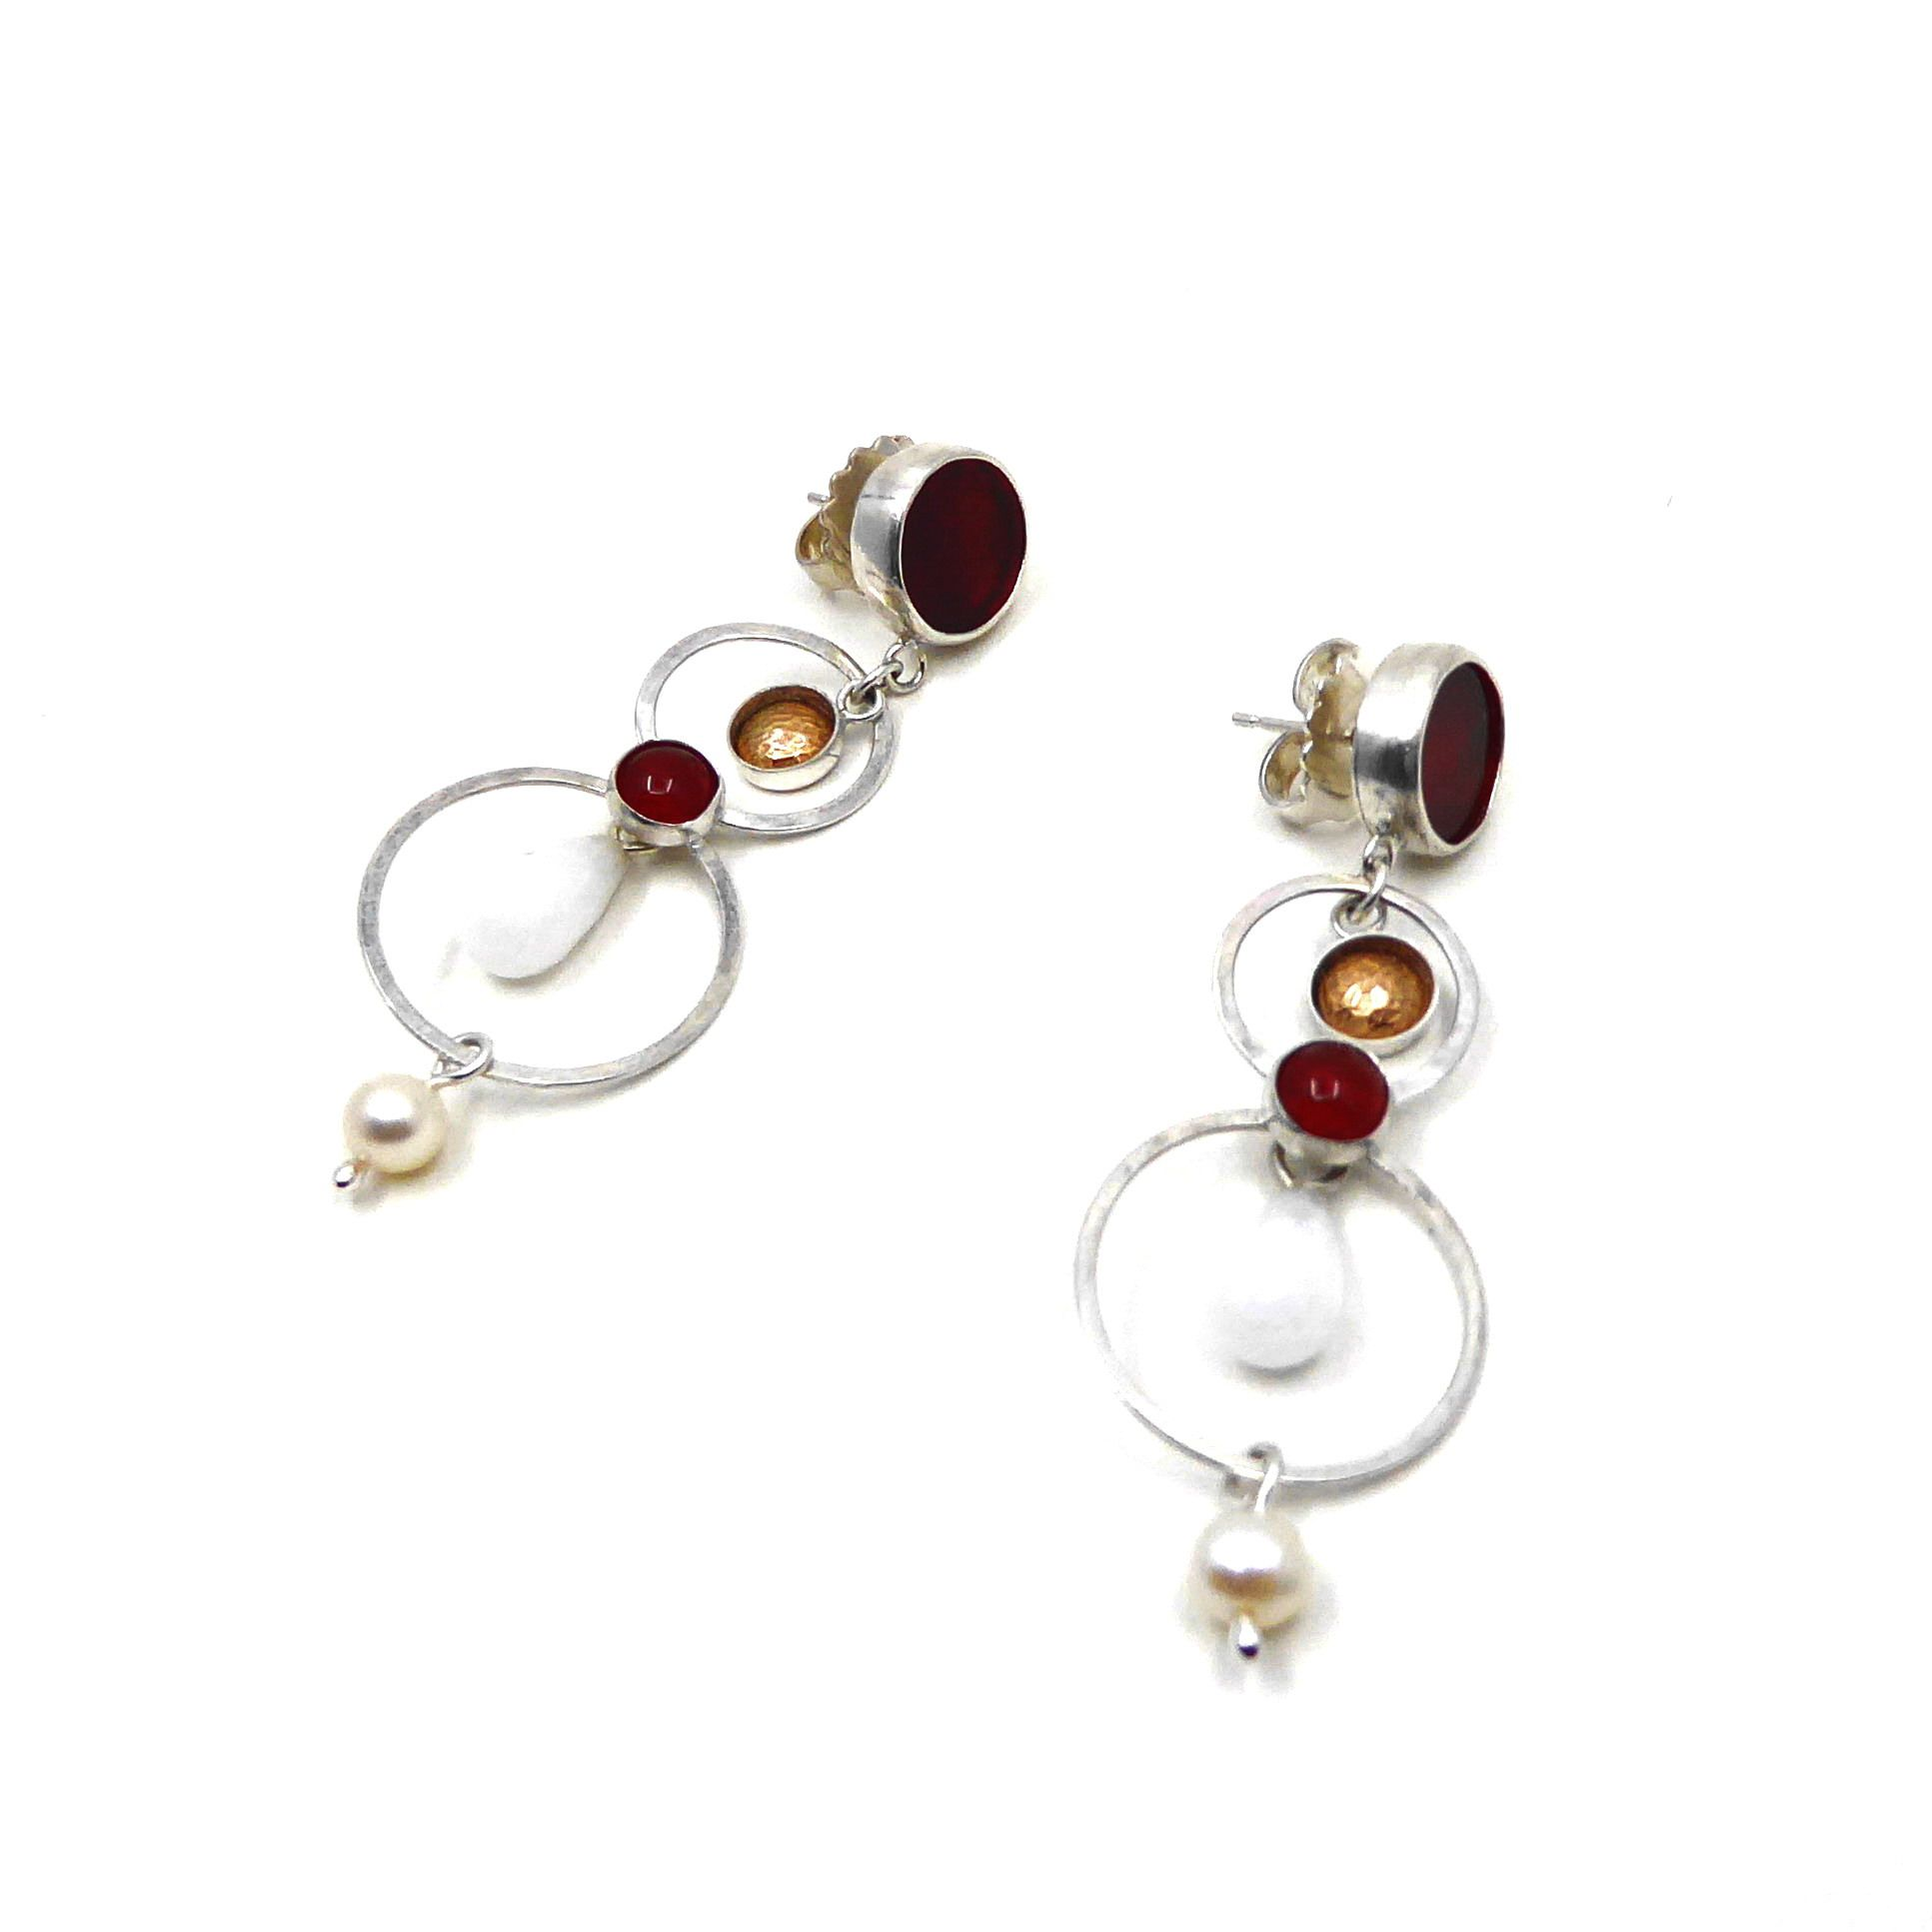 Silver earrings with 14ct gold filled domes,  lapis lazuli, facet-cut quartz crystal and pearls